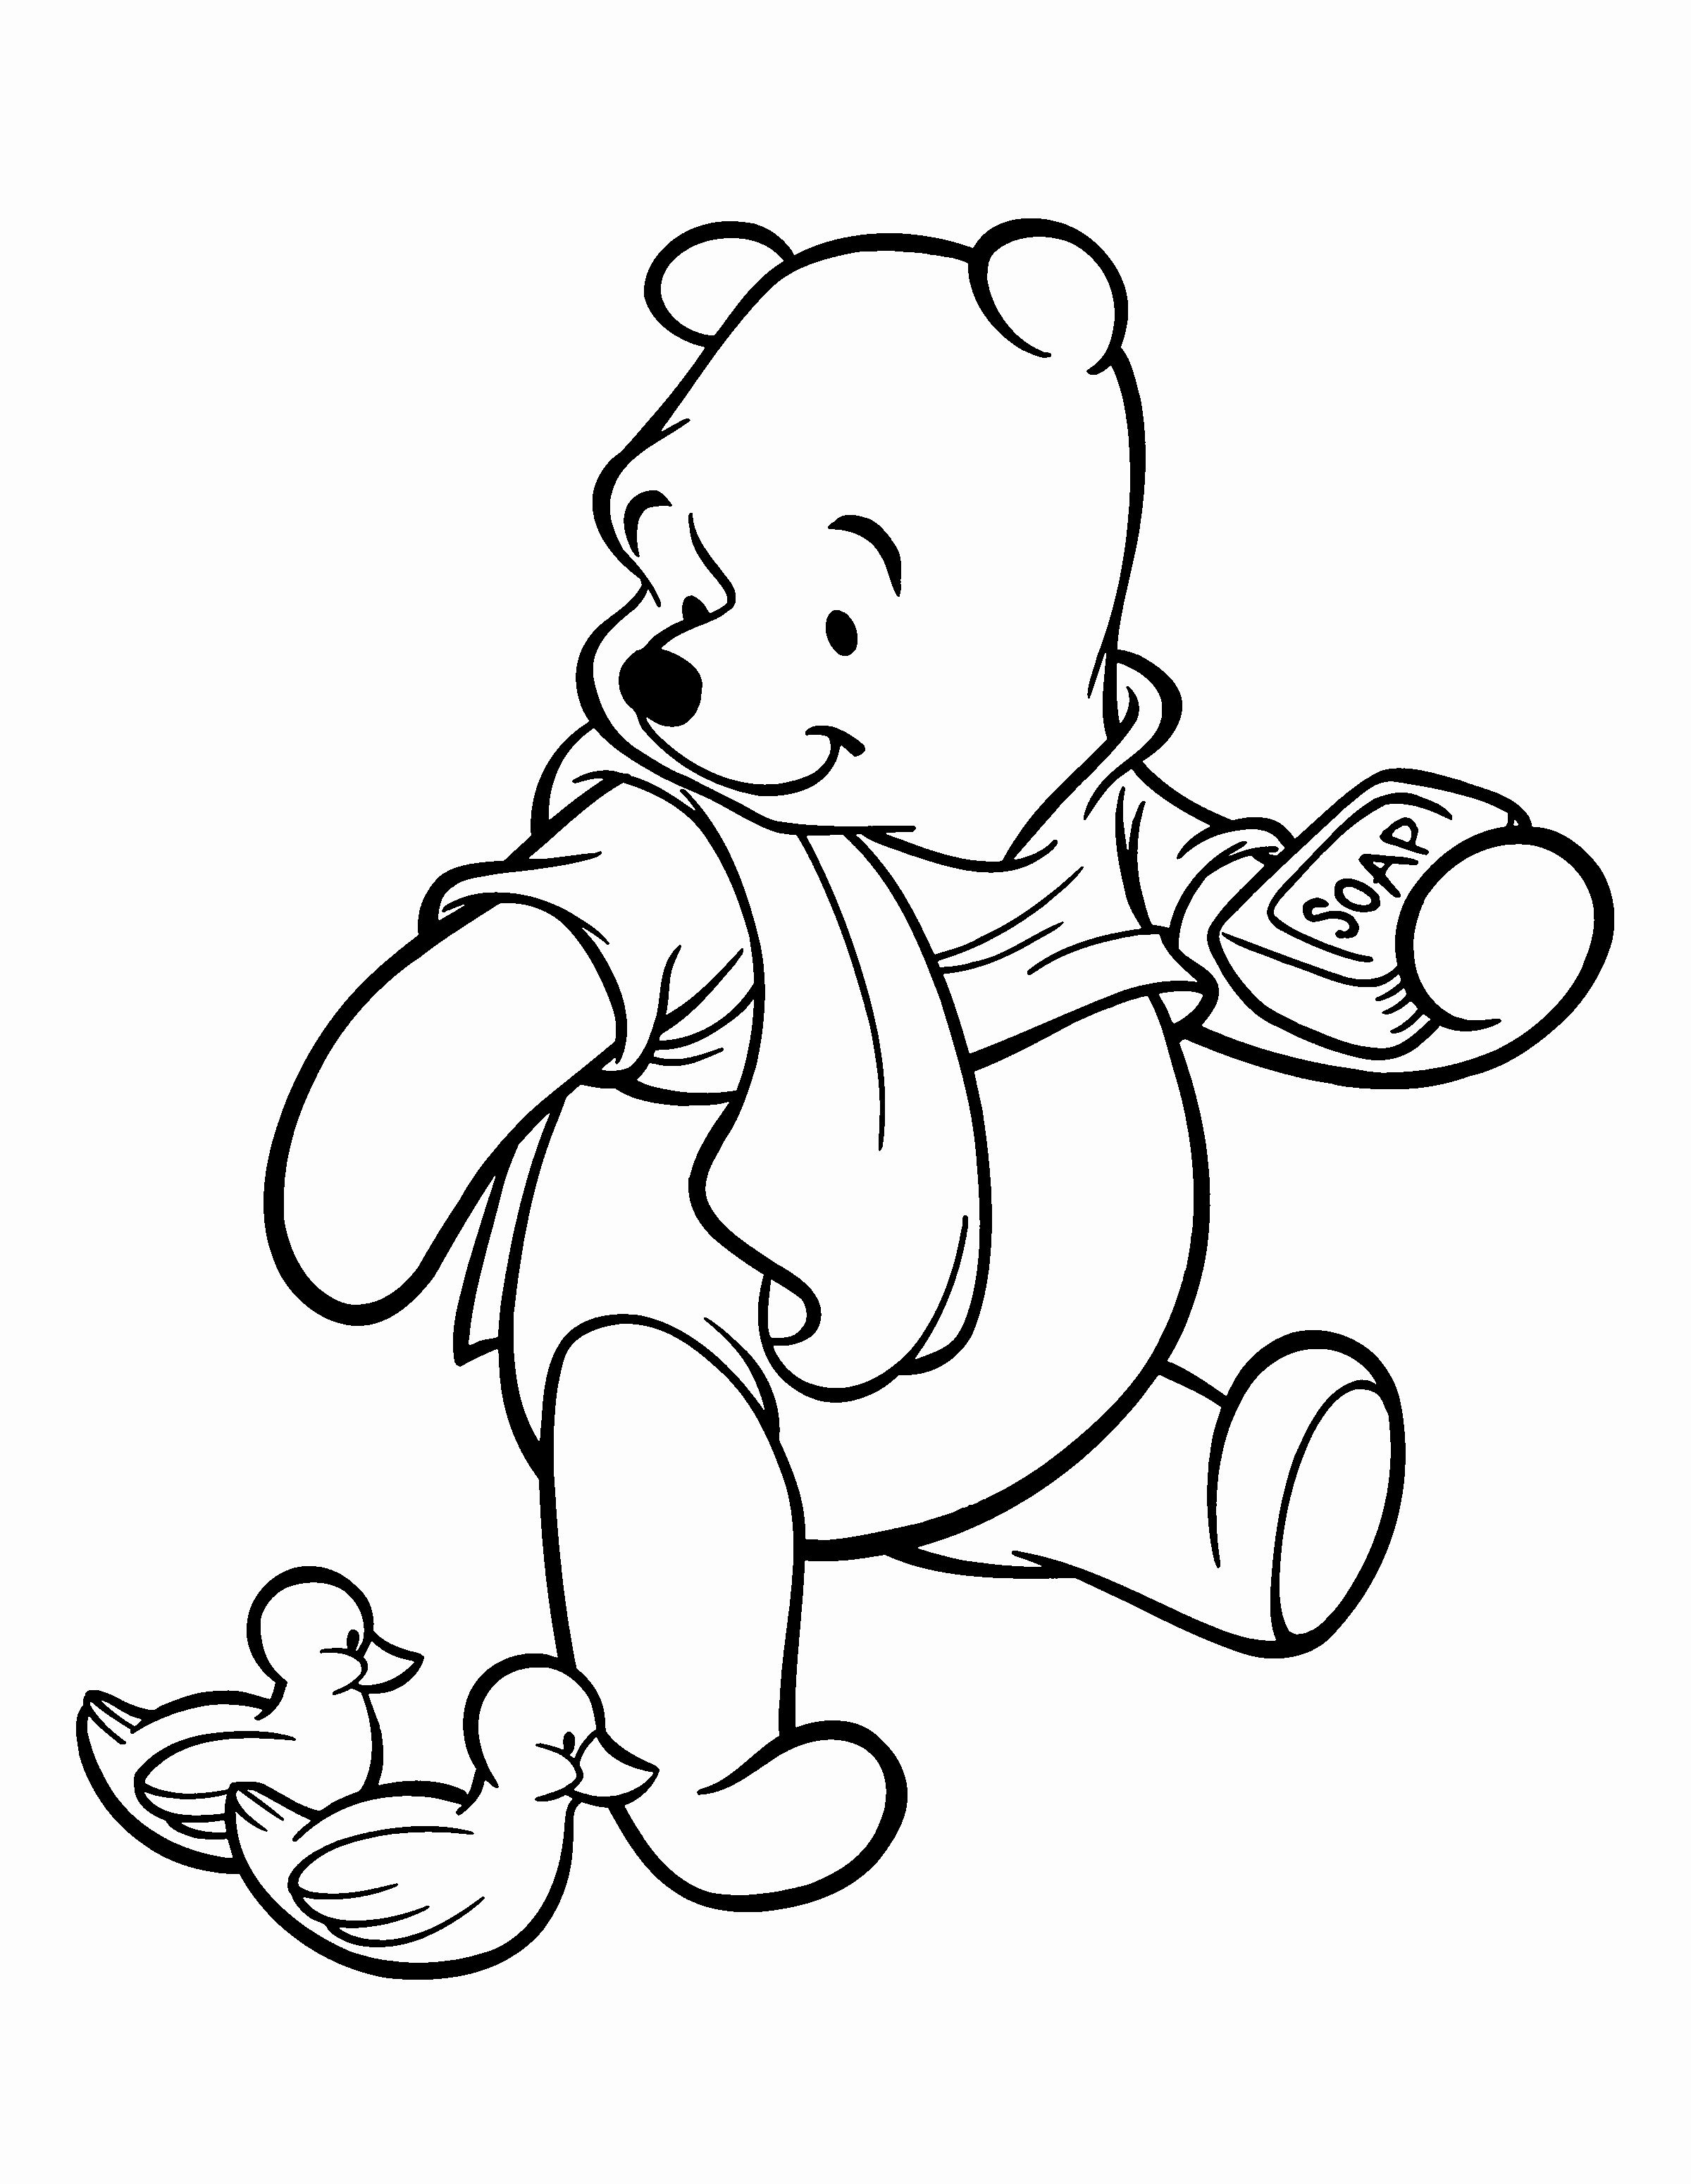 Flintstones Color Page Coloring Pages For Kids Cartoon Characters Coloring Pages Printable Co Cartoon Coloring Pages Disney Coloring Pages Coloring Pages